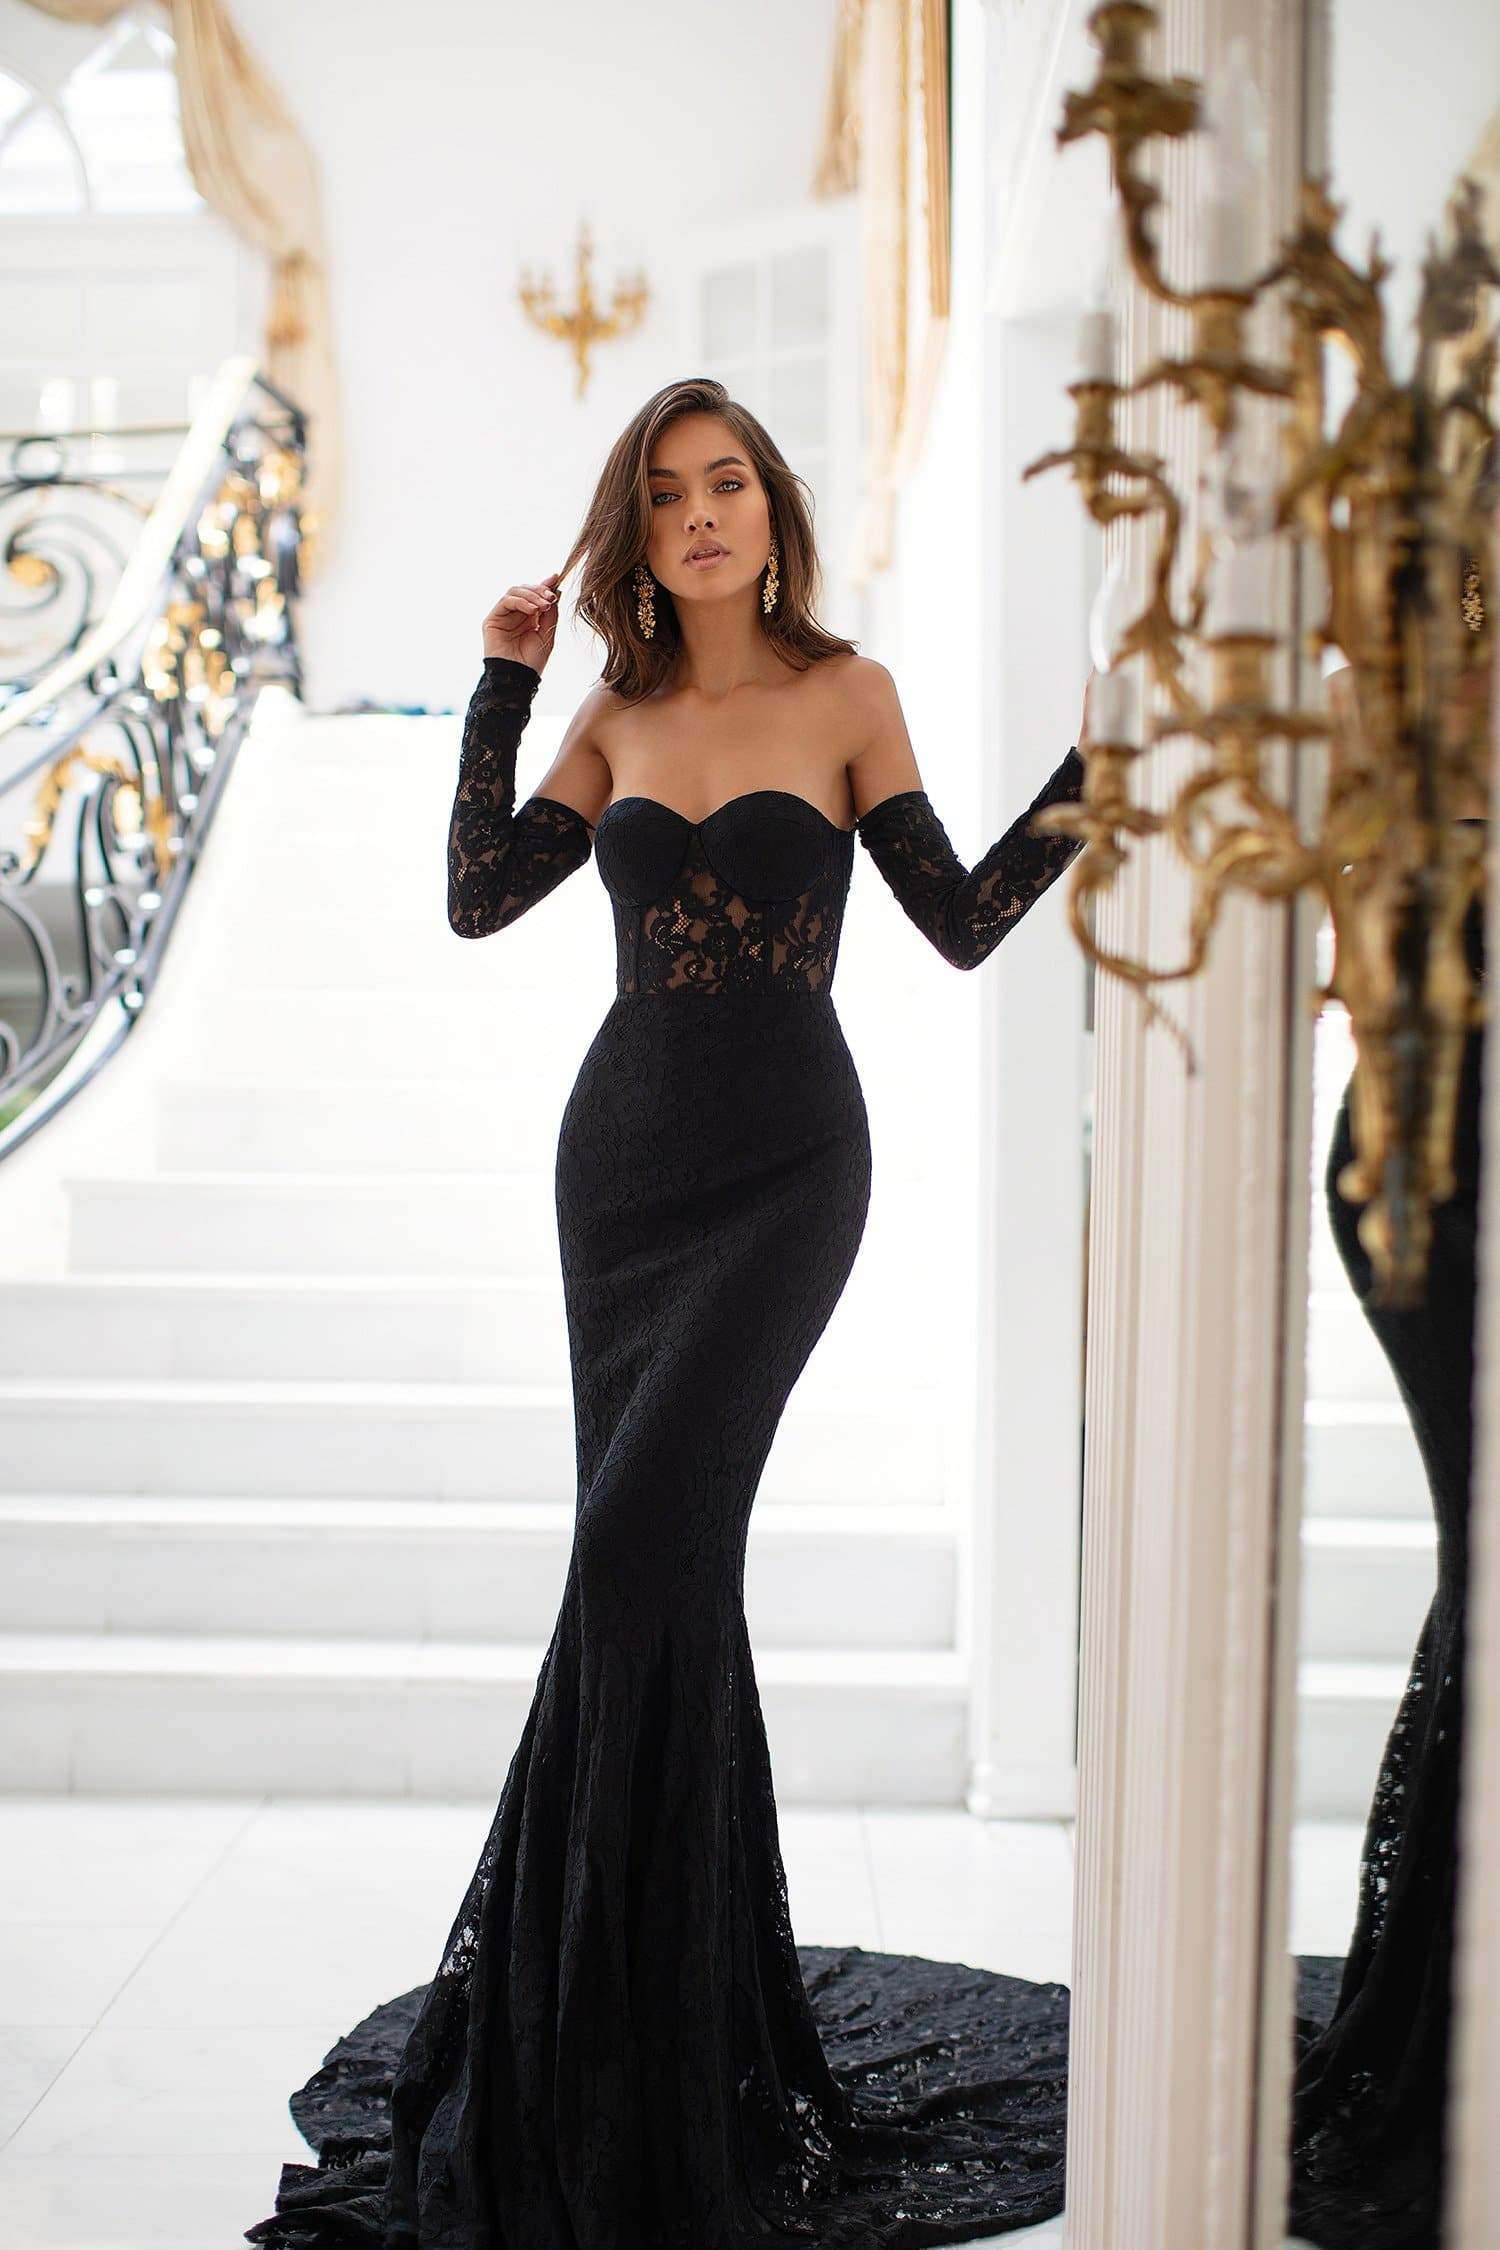 Sophie - Black Off-Shoulder Lace Mermaid Gown with Long Sleeves